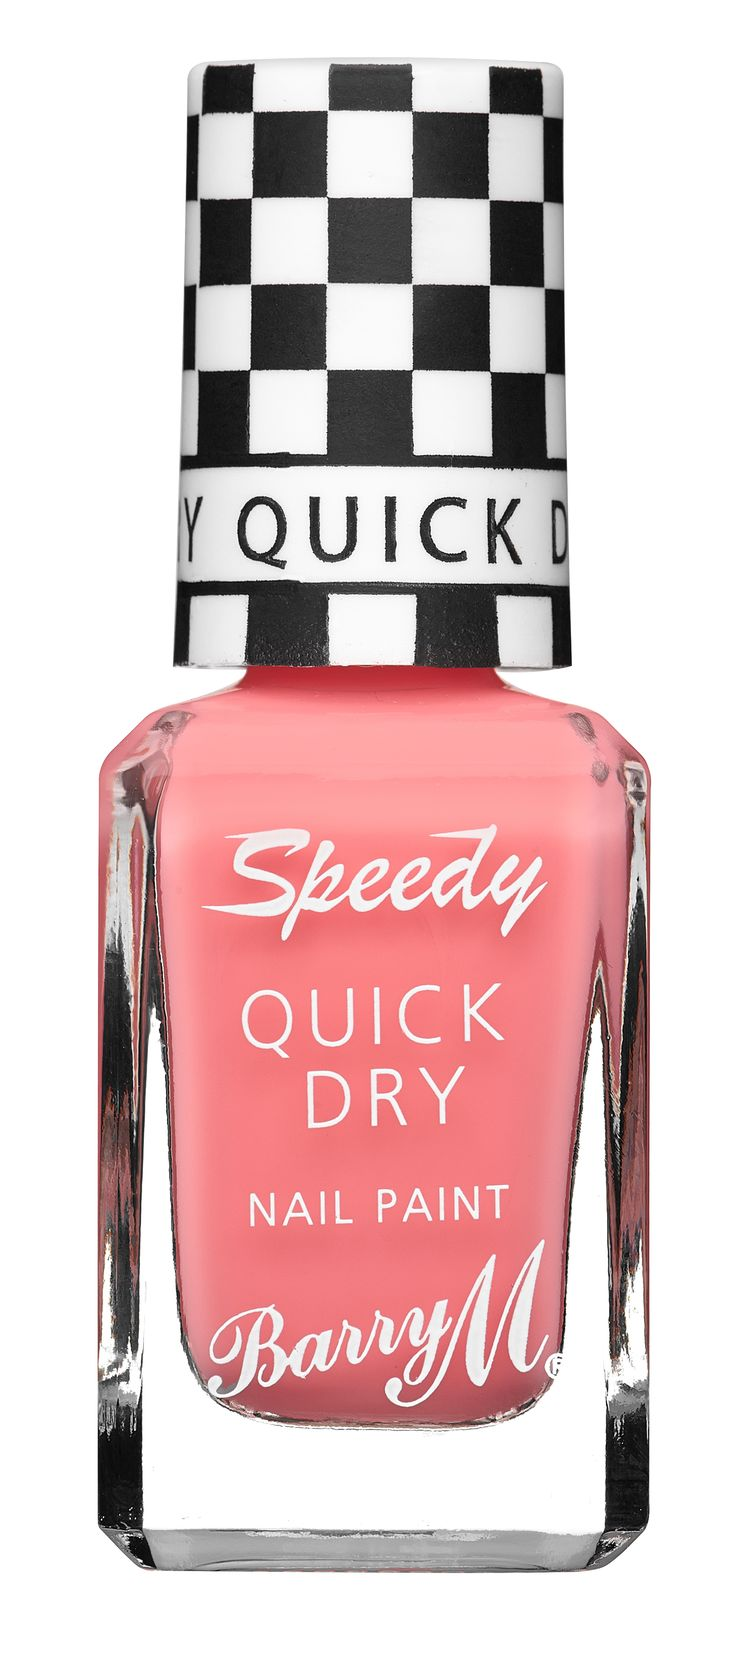 Barry M Speedy Quick Dry Nail Paint In a Heart Beat.